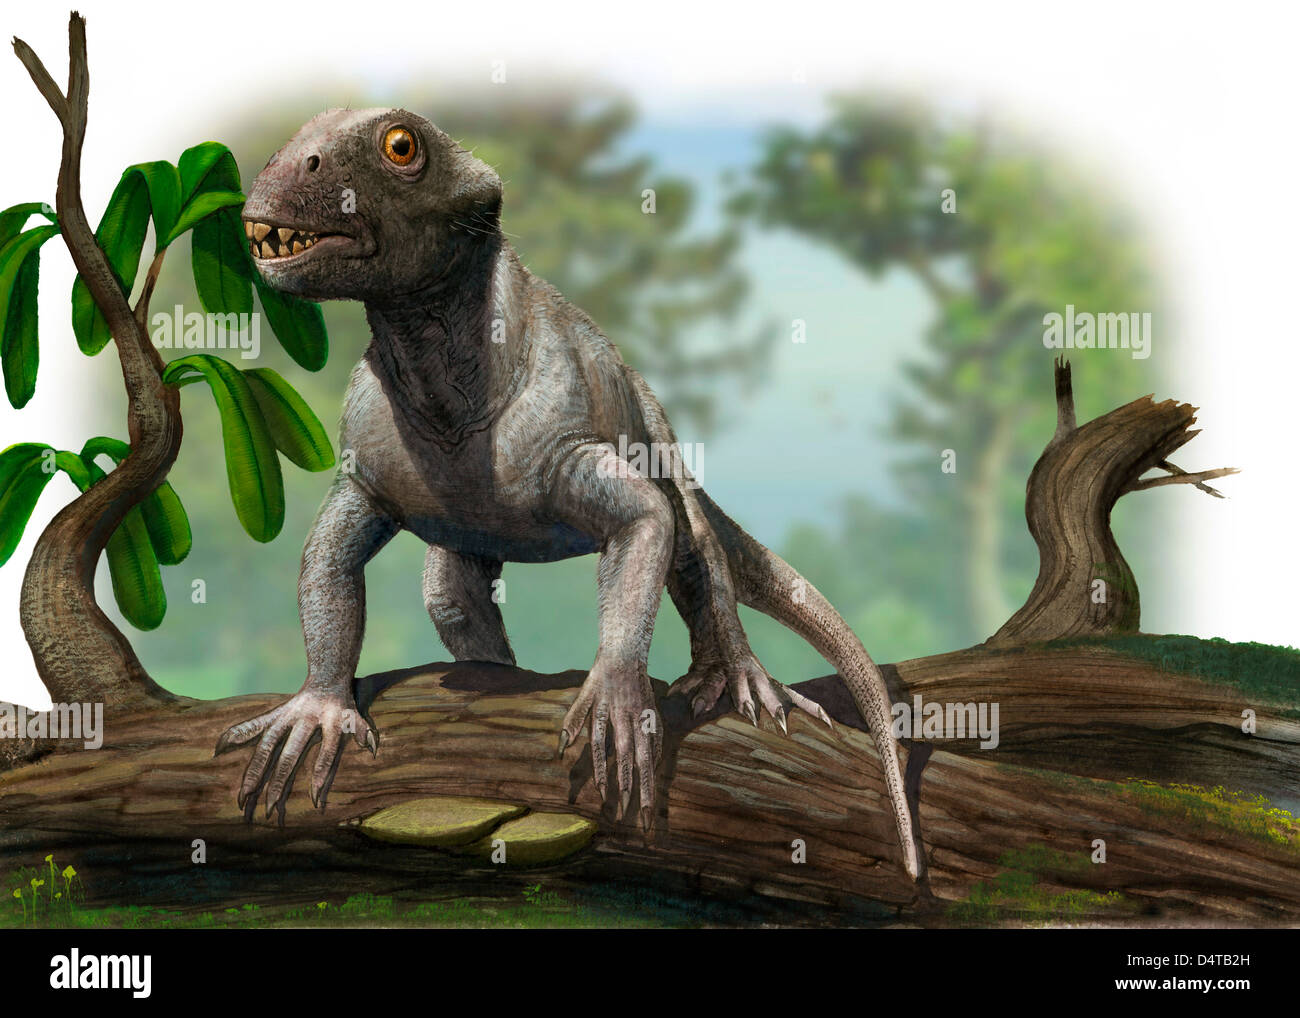 Illustration of a Suminia getmanovi in a prehistoric environment. - Stock Image